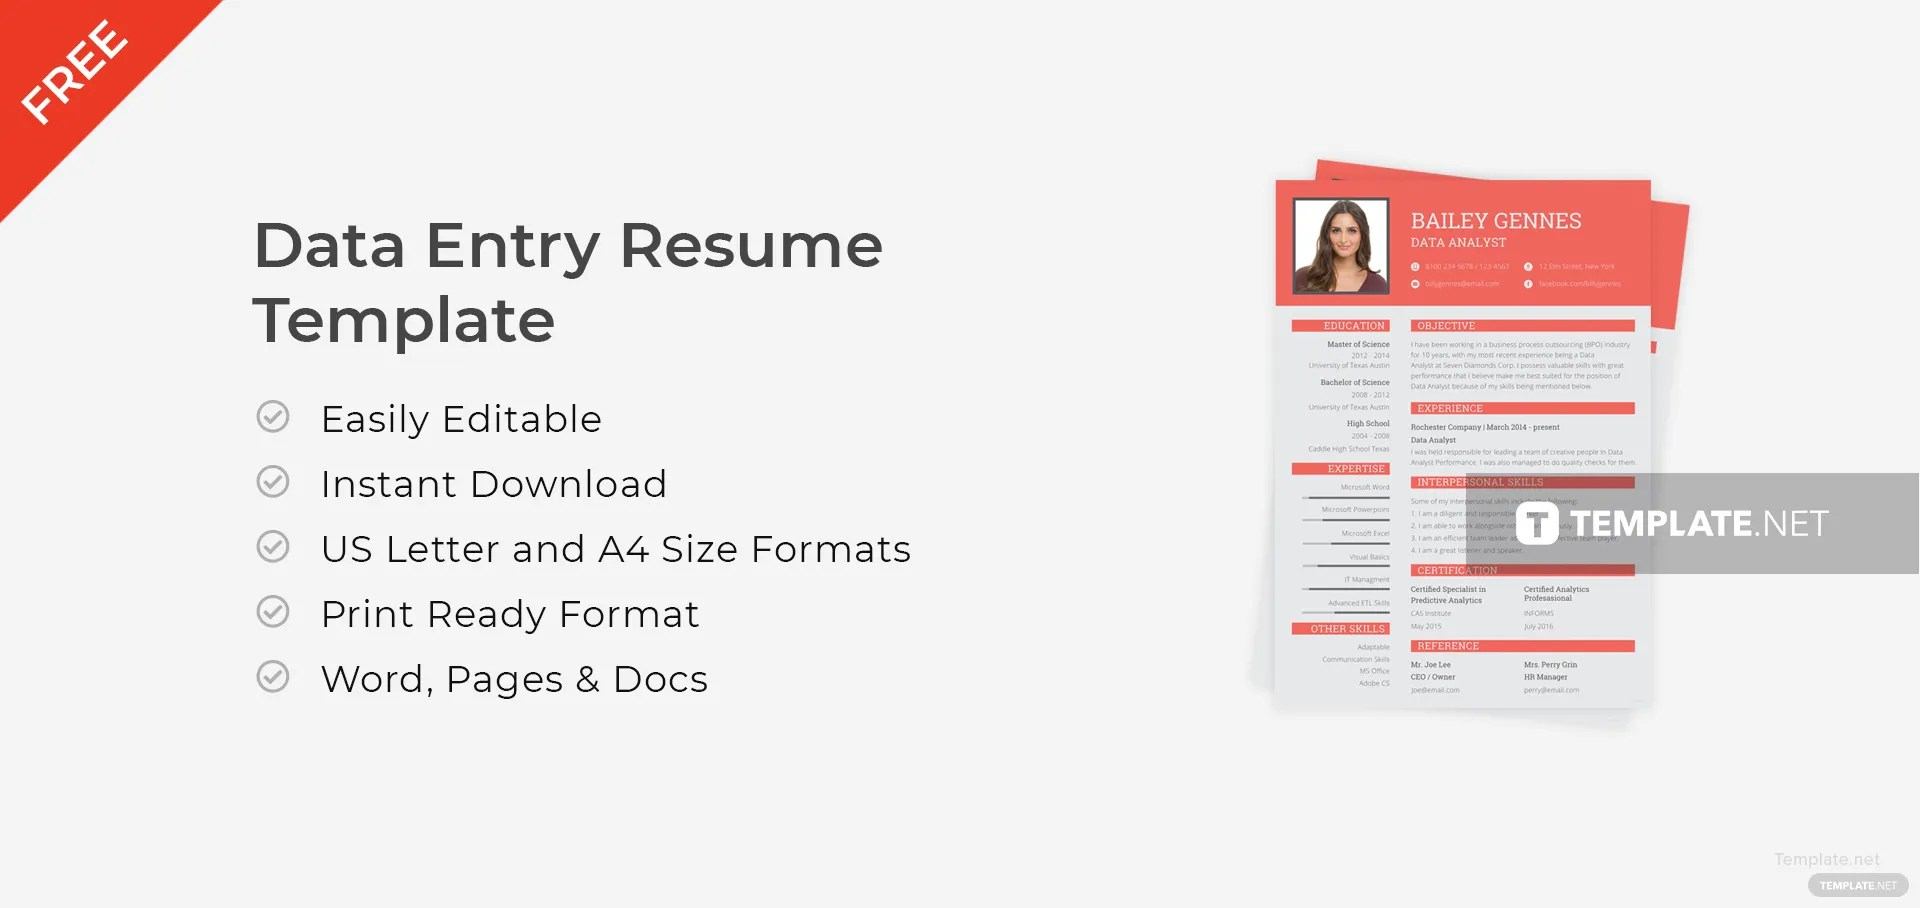 Free Data Entry Resume Template In Adobe Photoshop